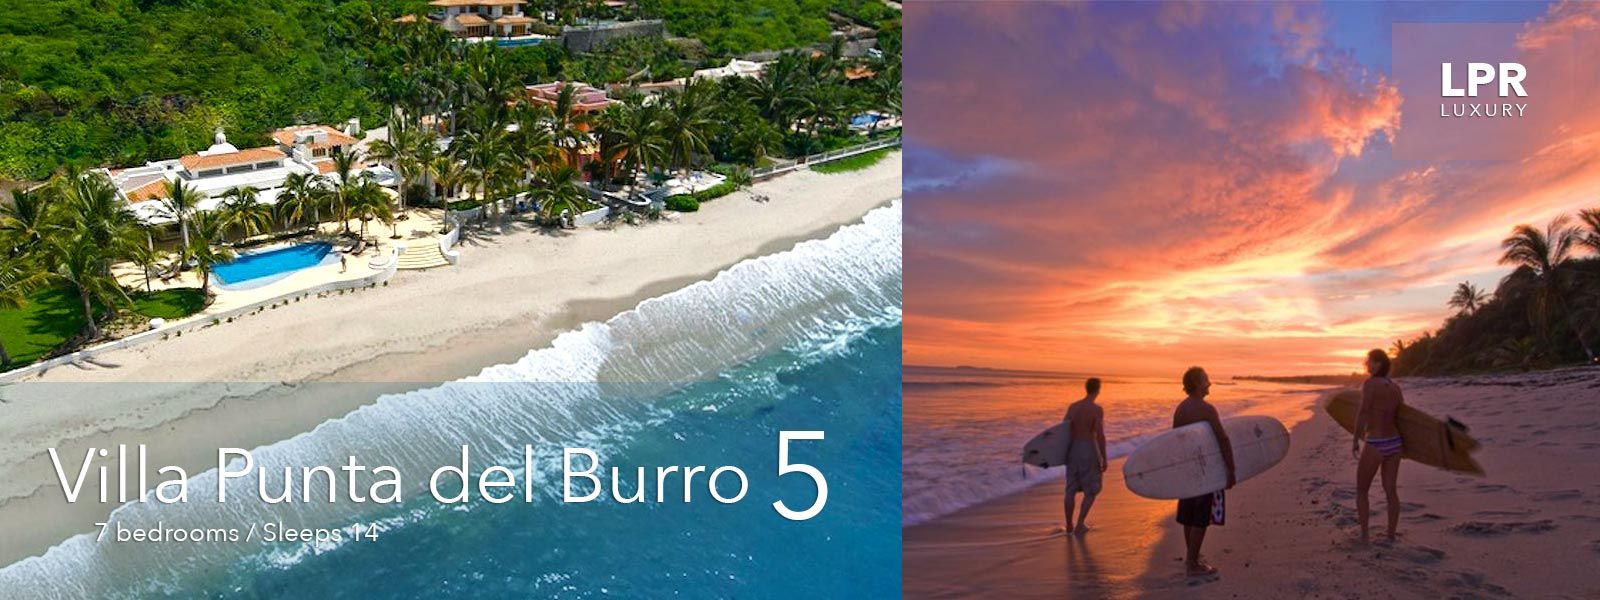 Villa Punta del Burro 5 - North Shore Puerto Vallarta Real Estate - Mexico